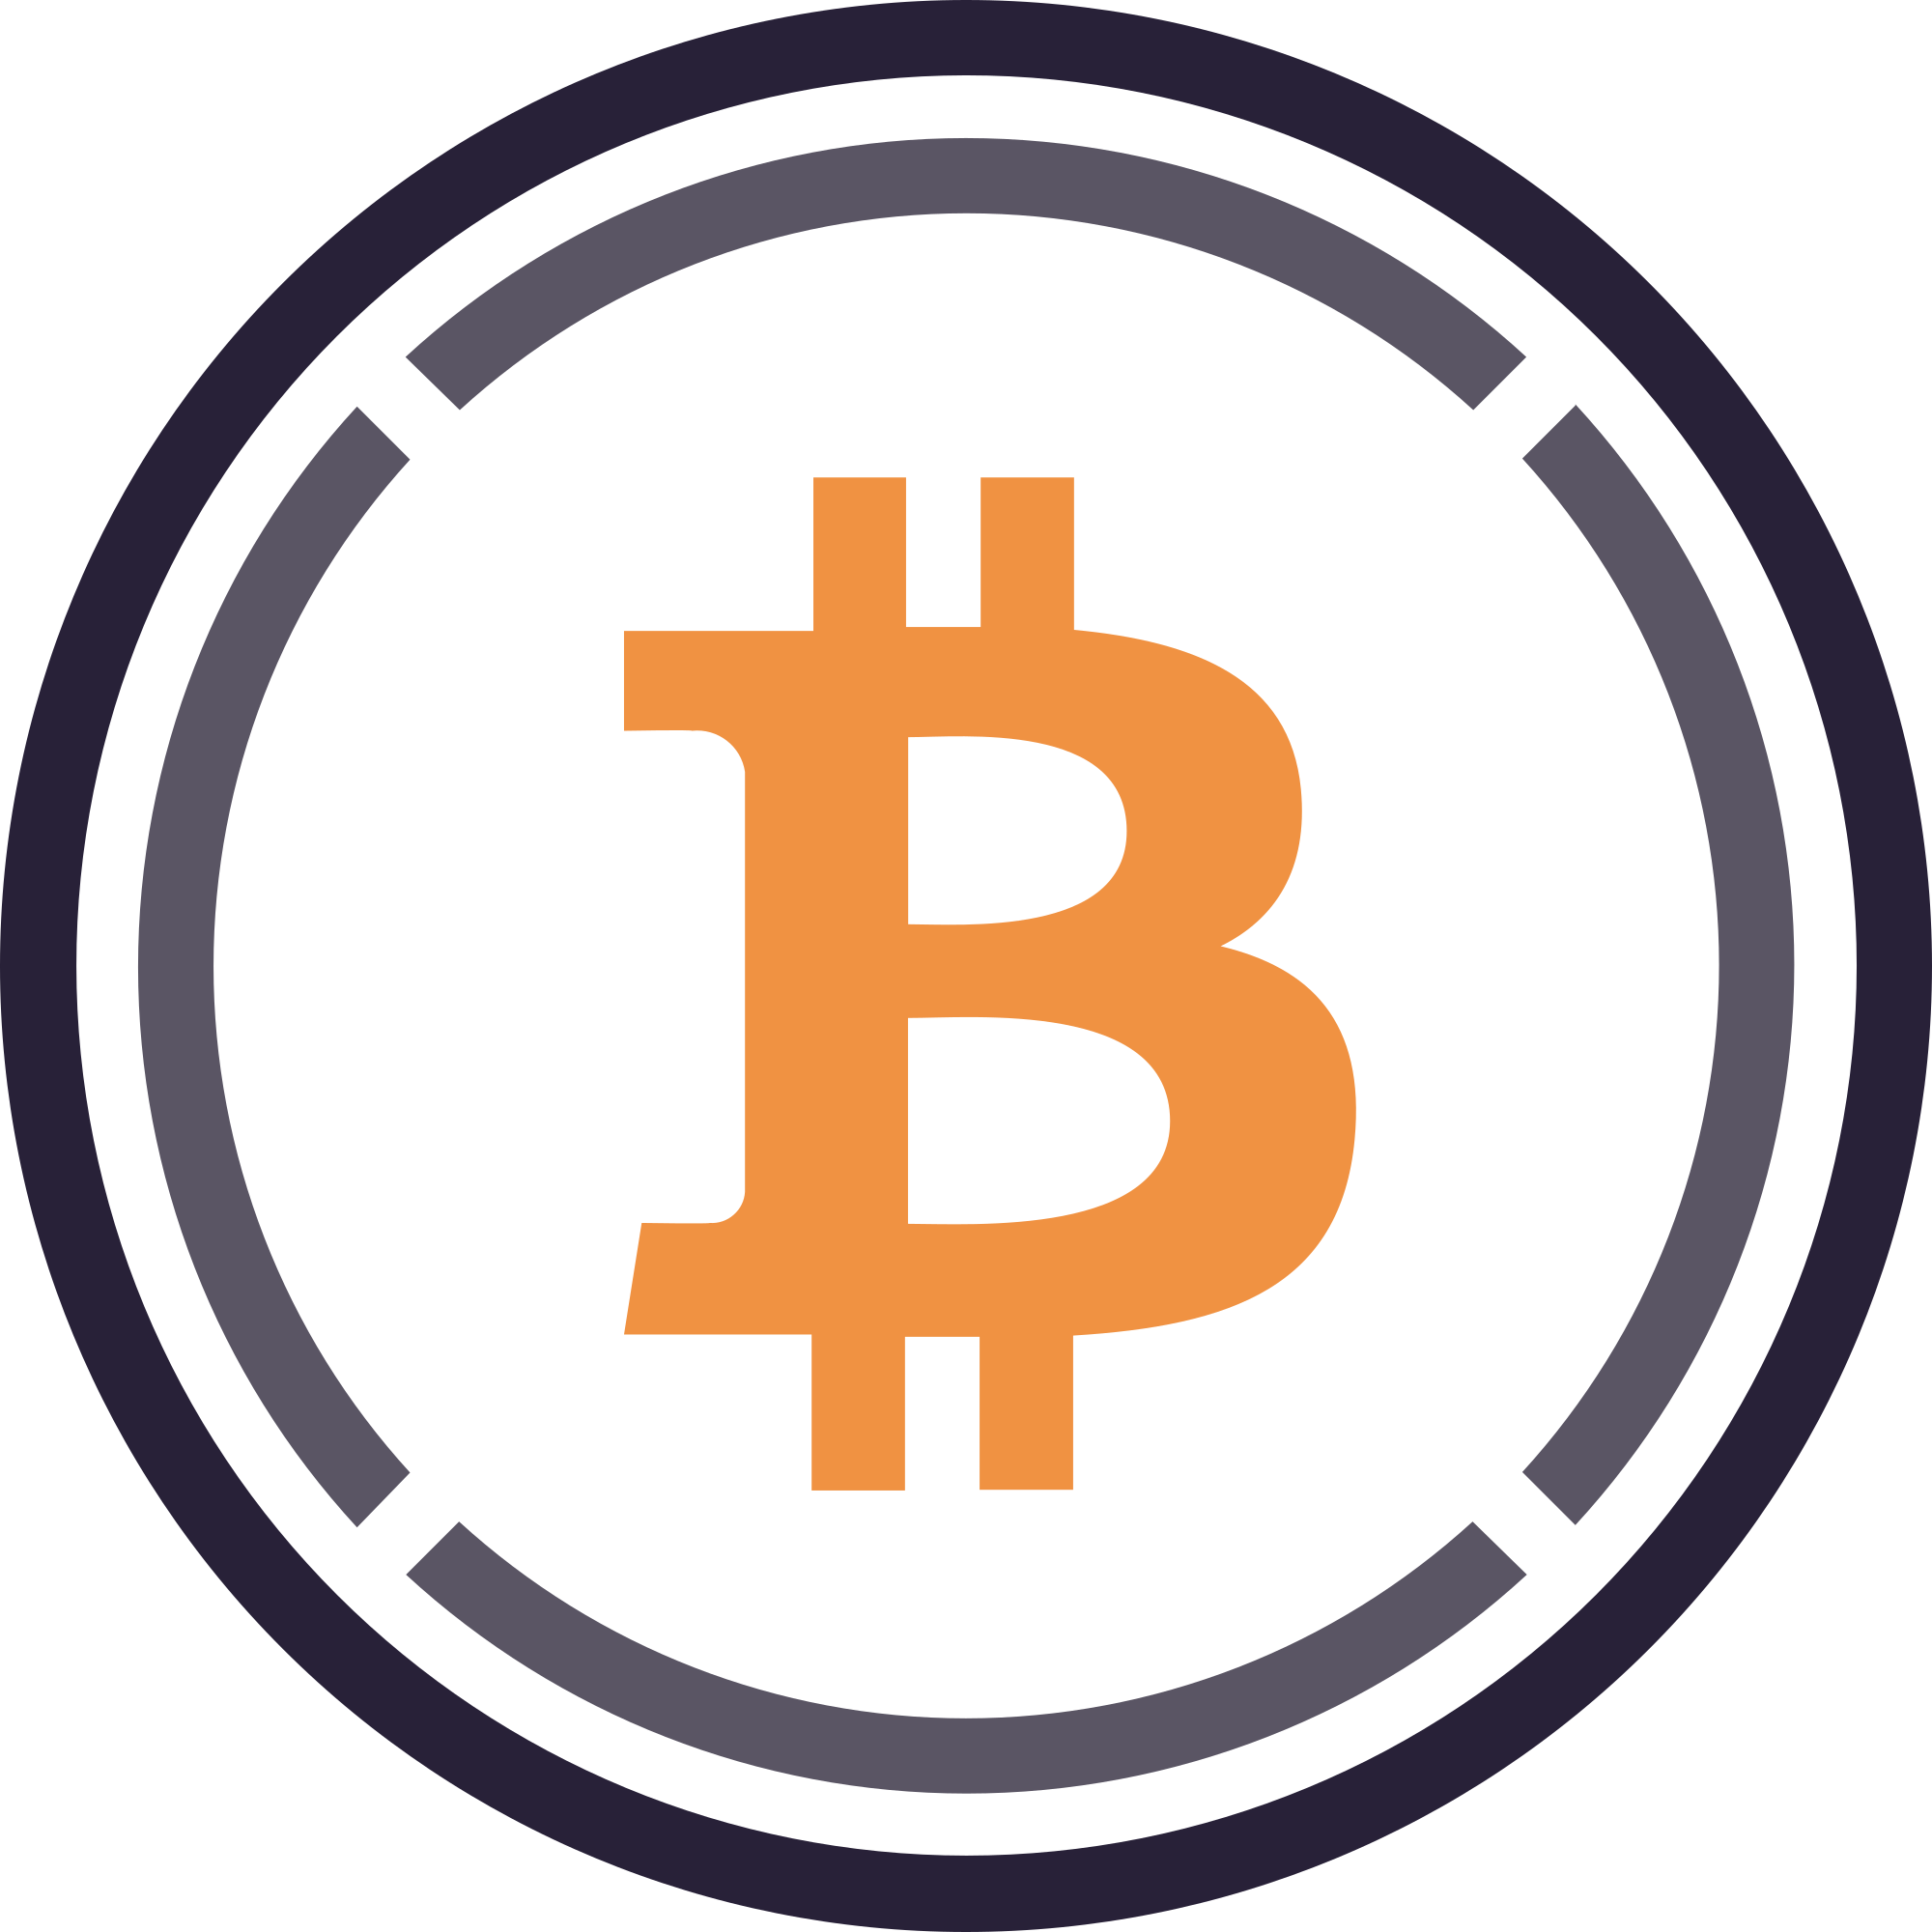 Wrapped Bitcoin Wbtc Logo Svg And Png Files Download